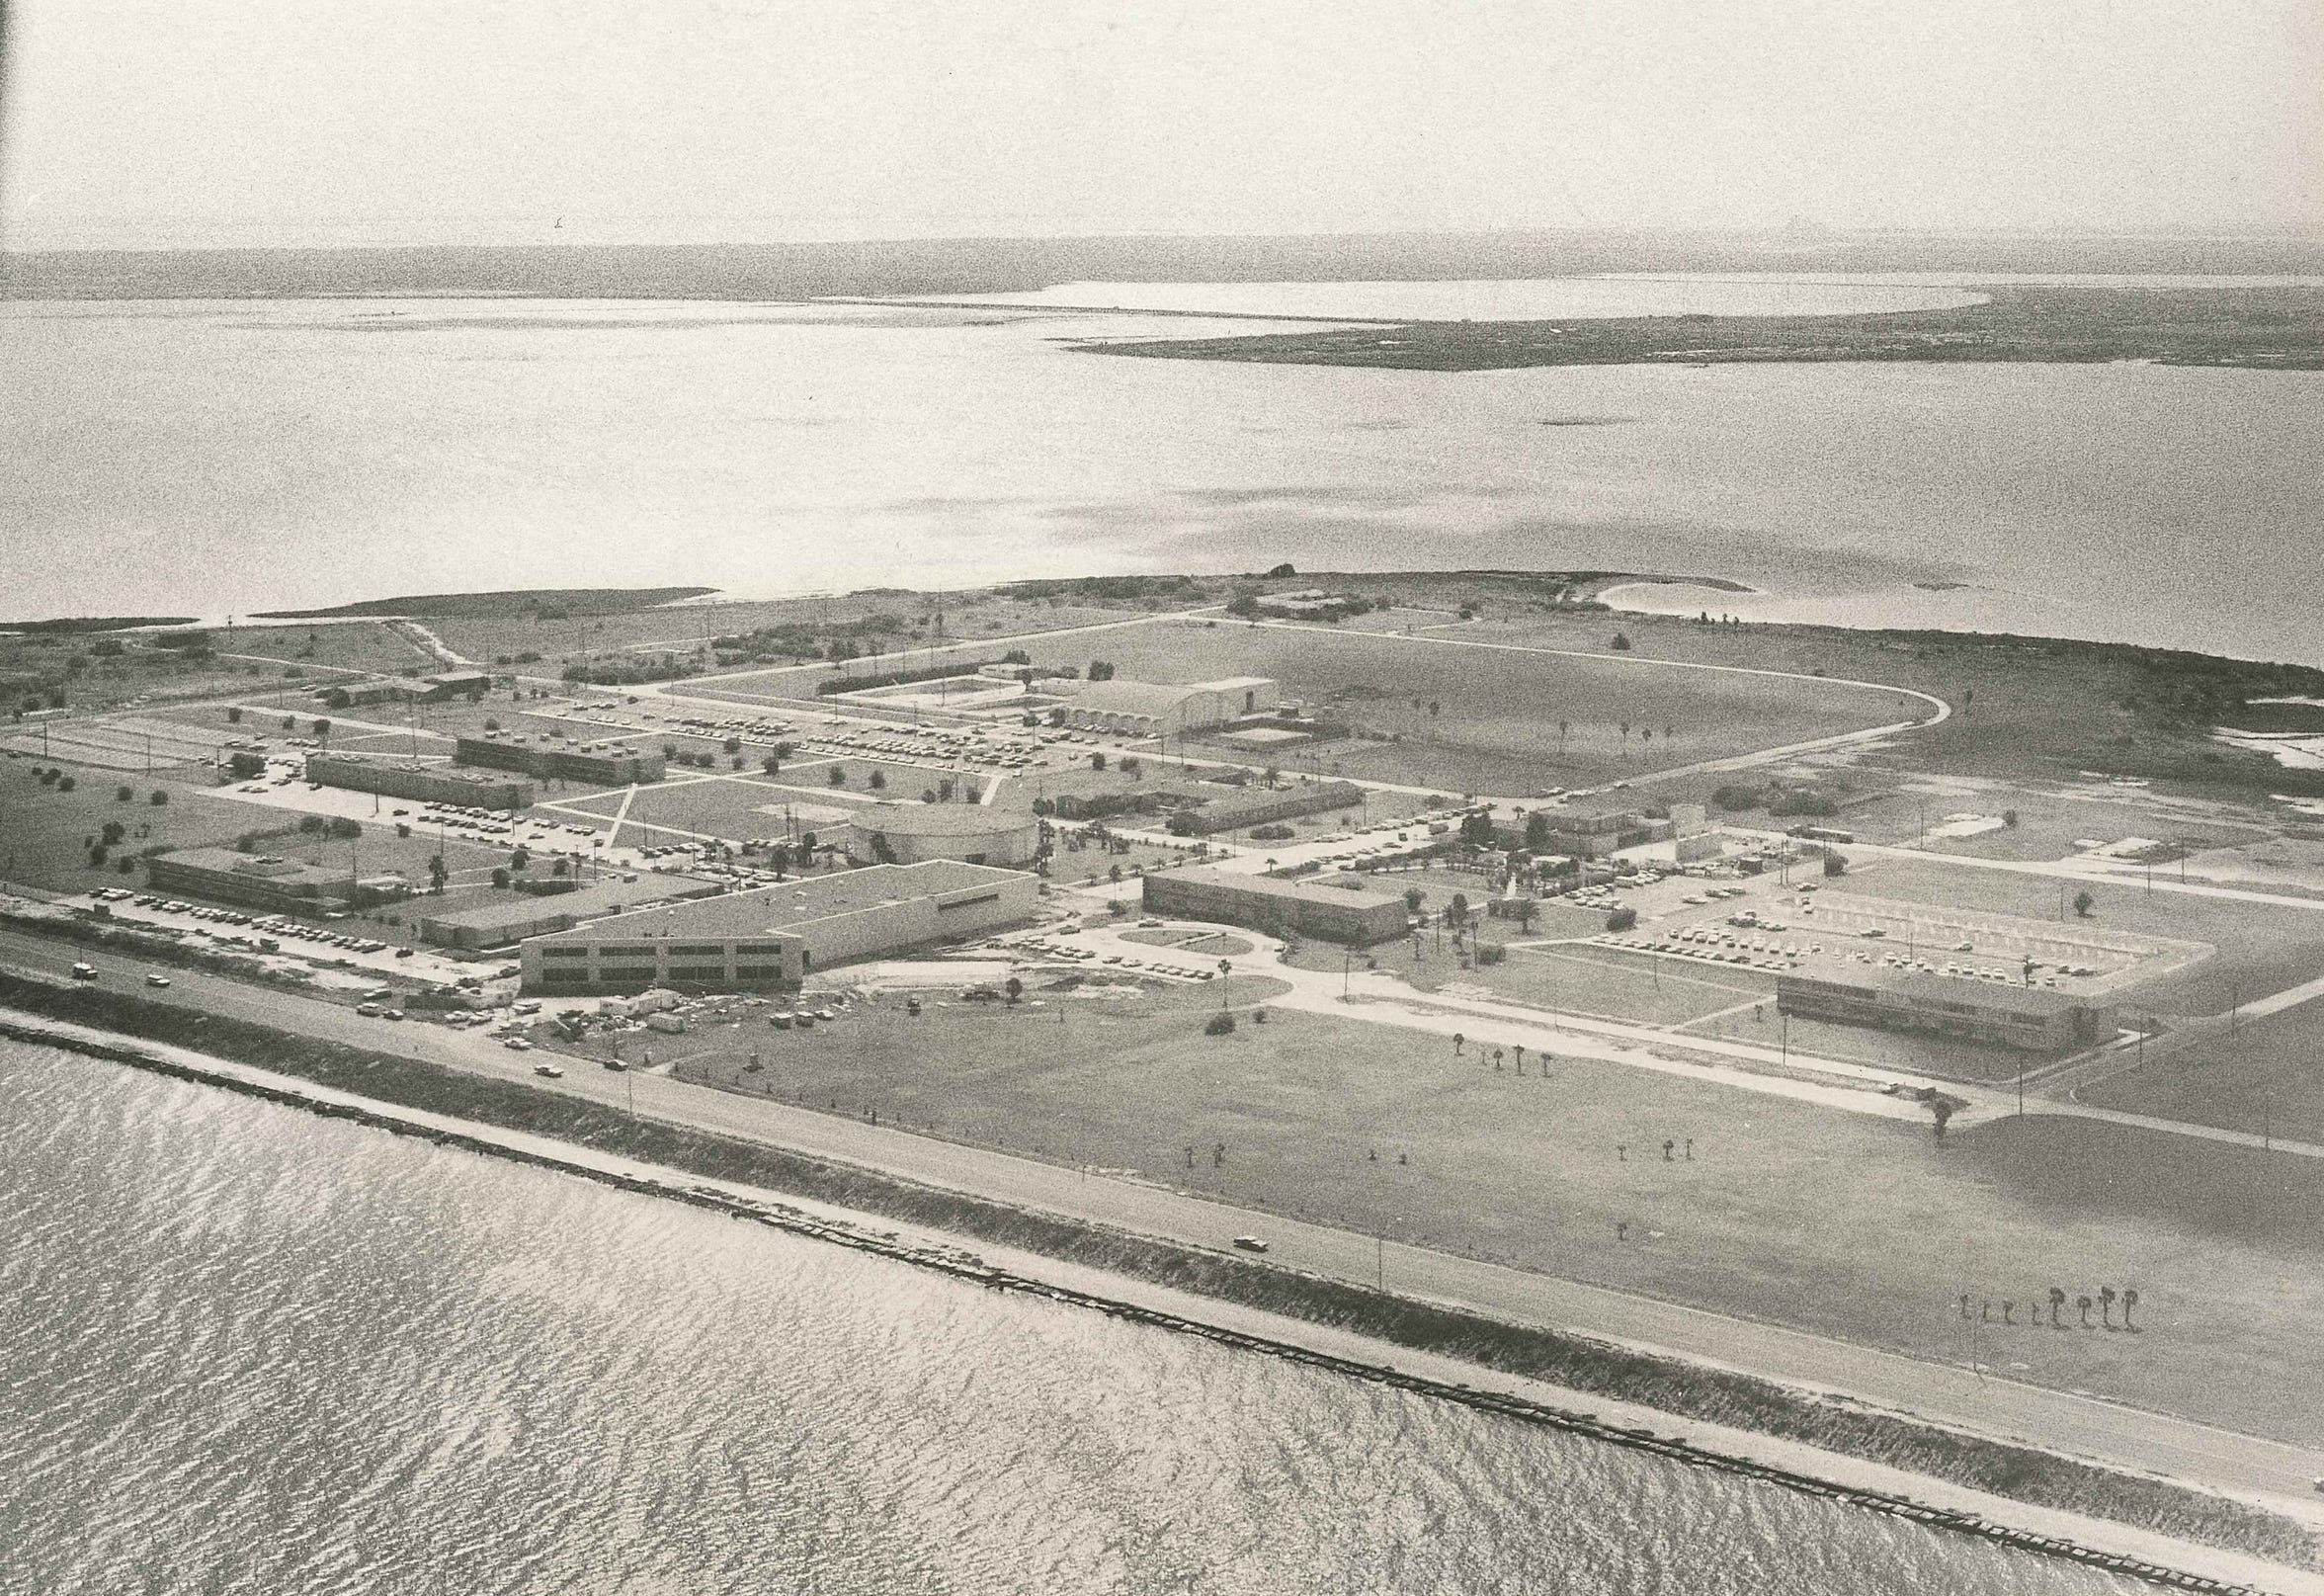 Ward Island, home of Texas A&I University at Corpus Christi in December 1975.